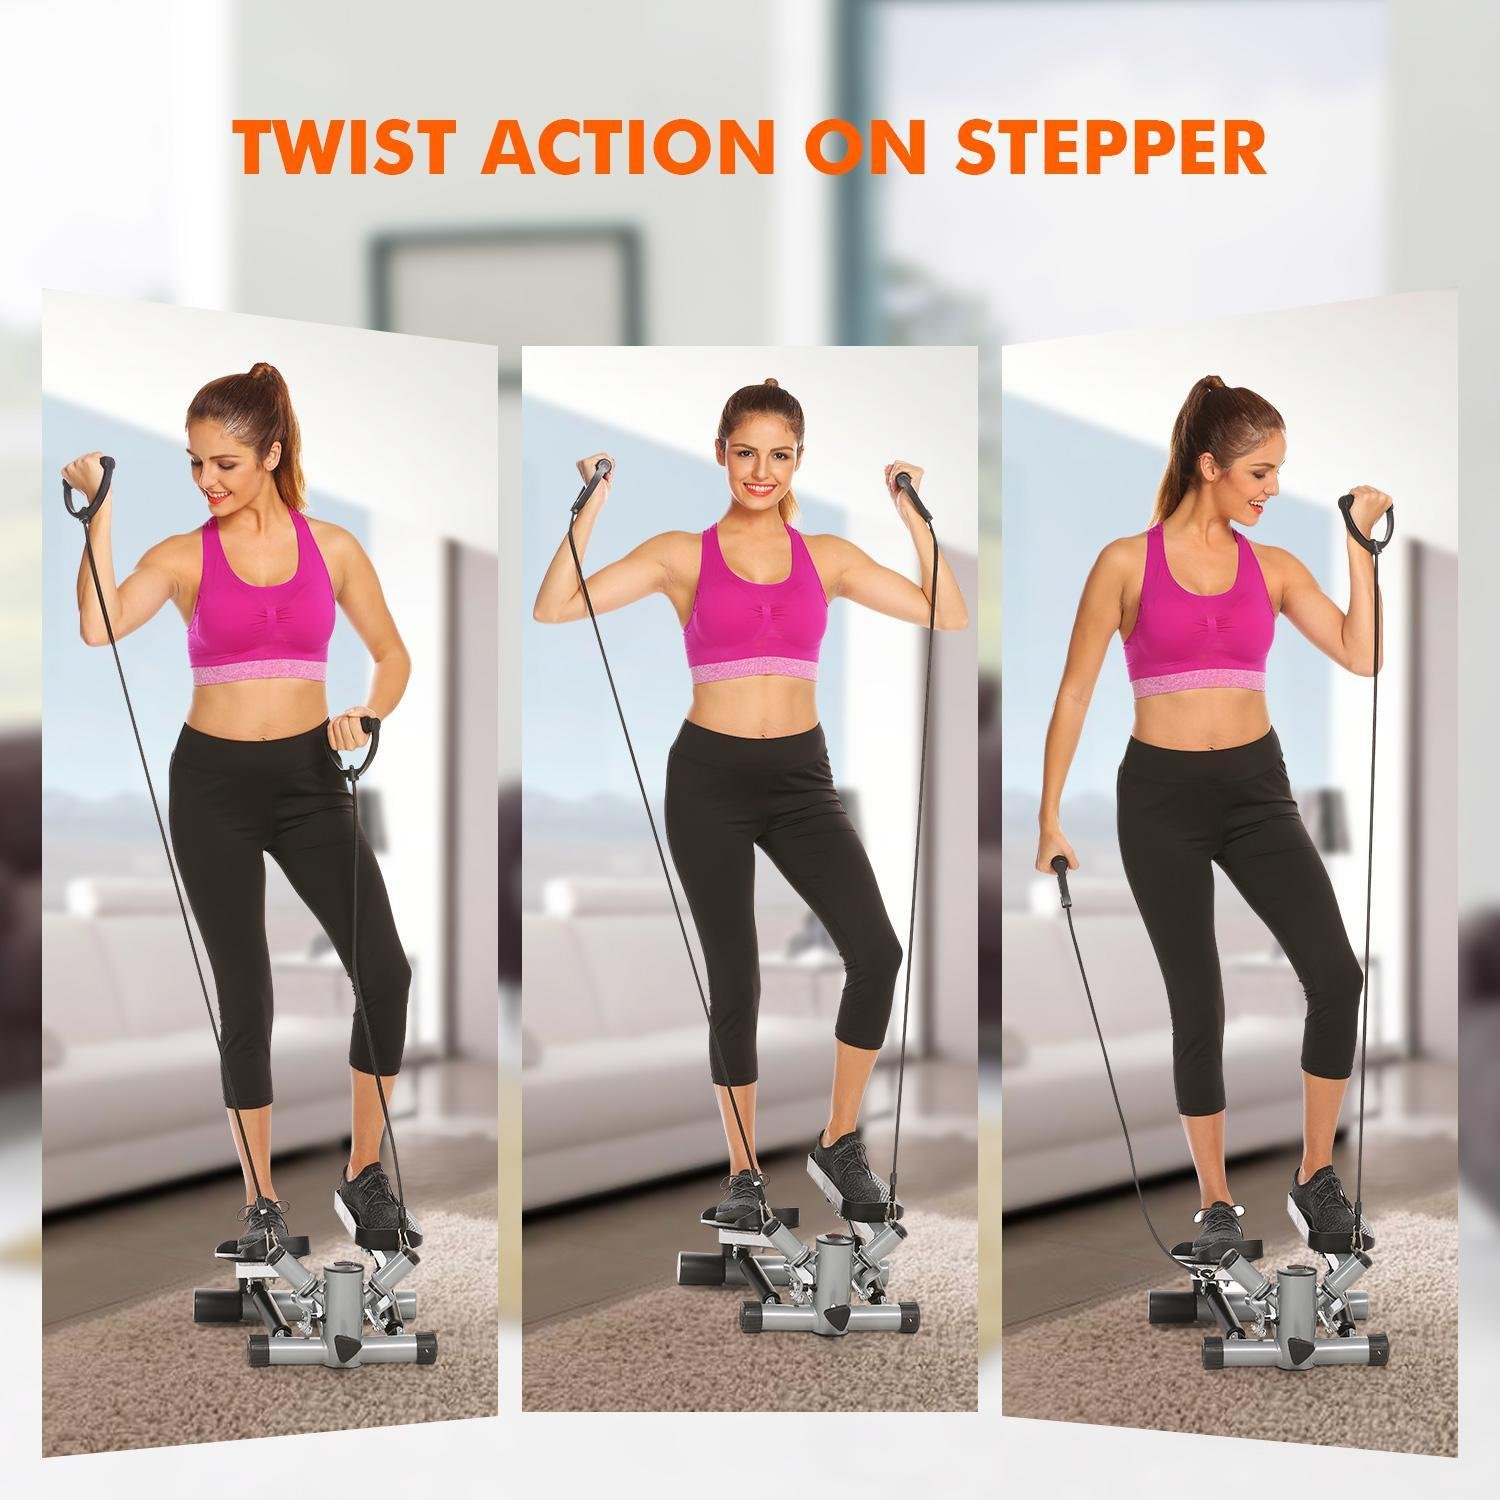 Mini Exercise Stepper Machine, Adjustable Fitness Stepper Air Stair Climber Step with Resistance Bands for Indoor Home Exercise [US STOCK] by Evokem